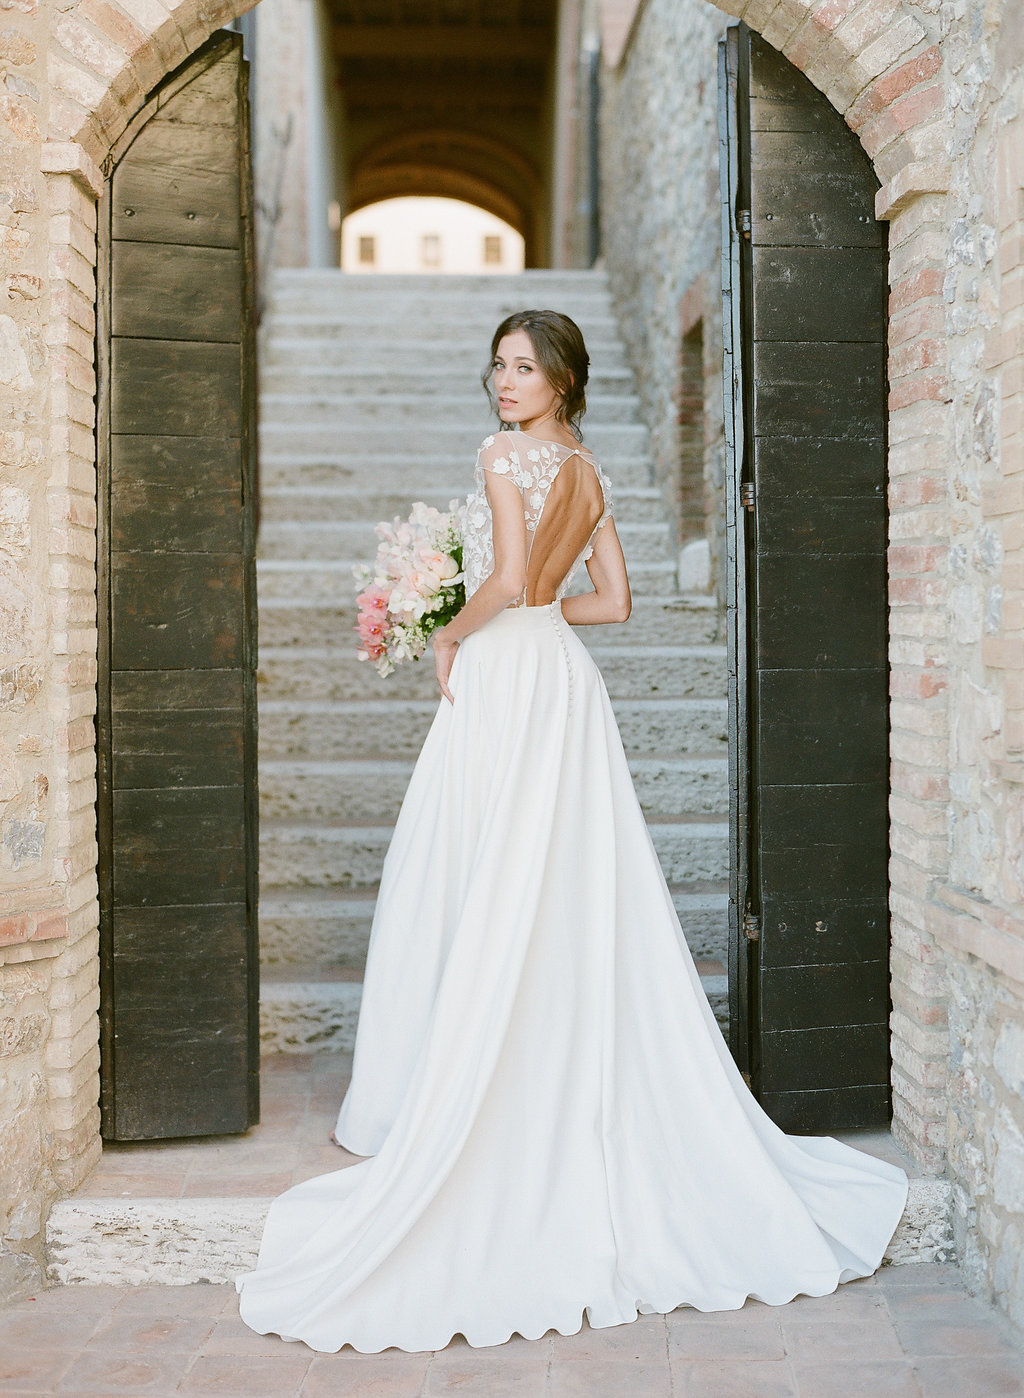 open back wedding dress with floral appliques and an illusion top